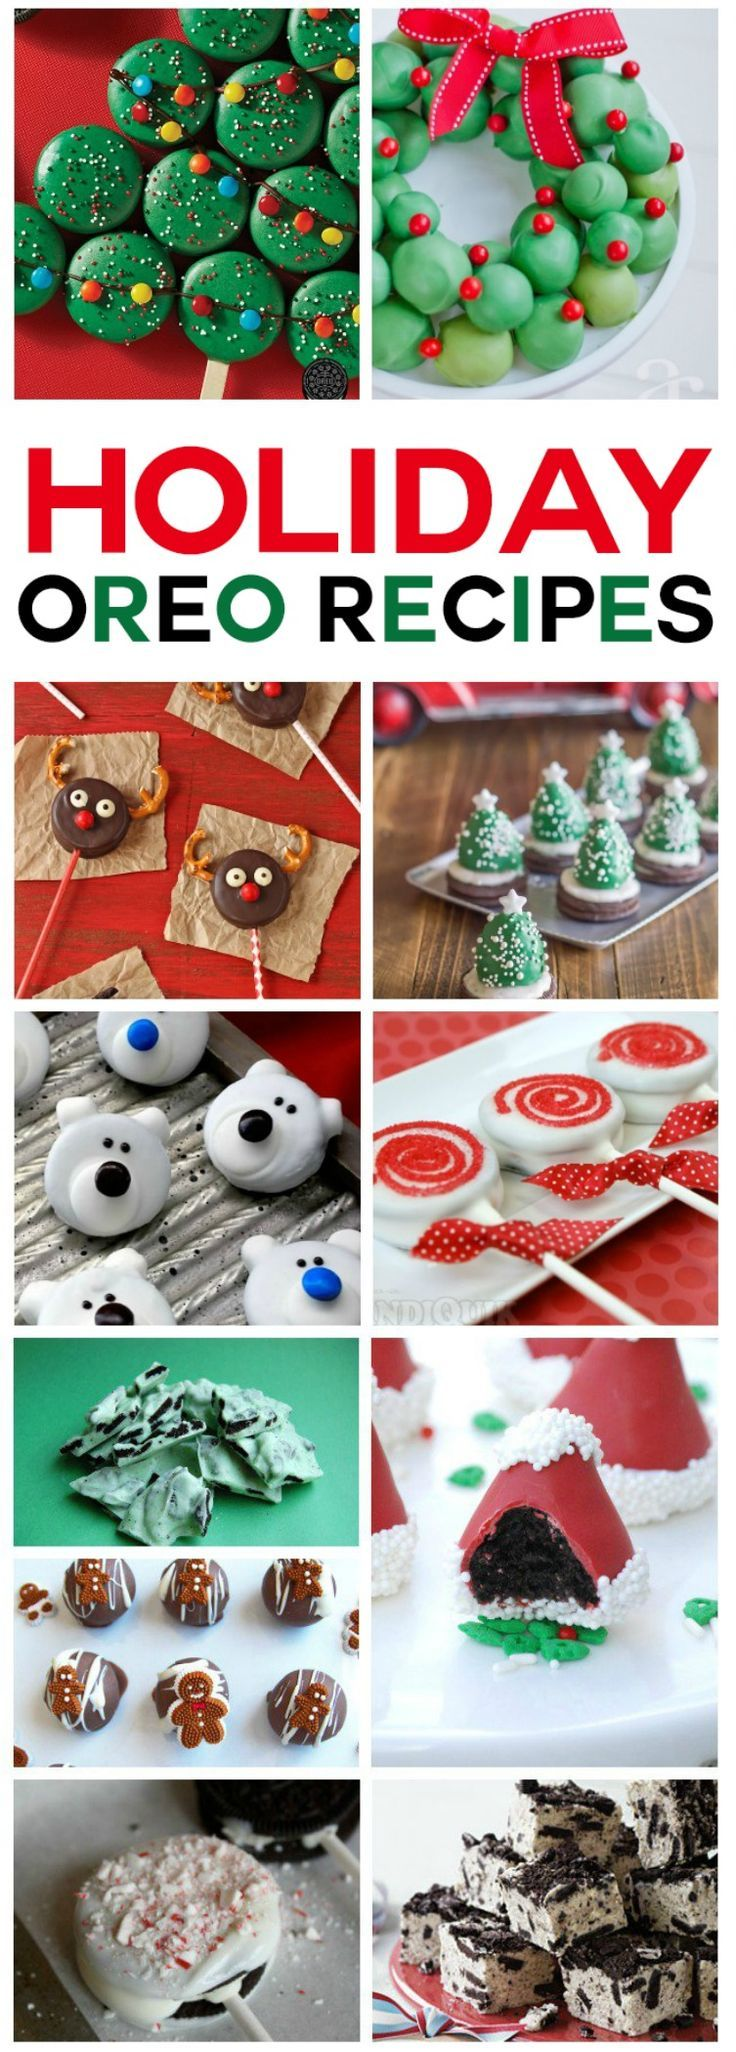 25 Incredible OREO Holiday Recipes - all these festive holiday treats use OREO cookies as a main ingredient.  What a fun idea for yummy Christmas desserts!